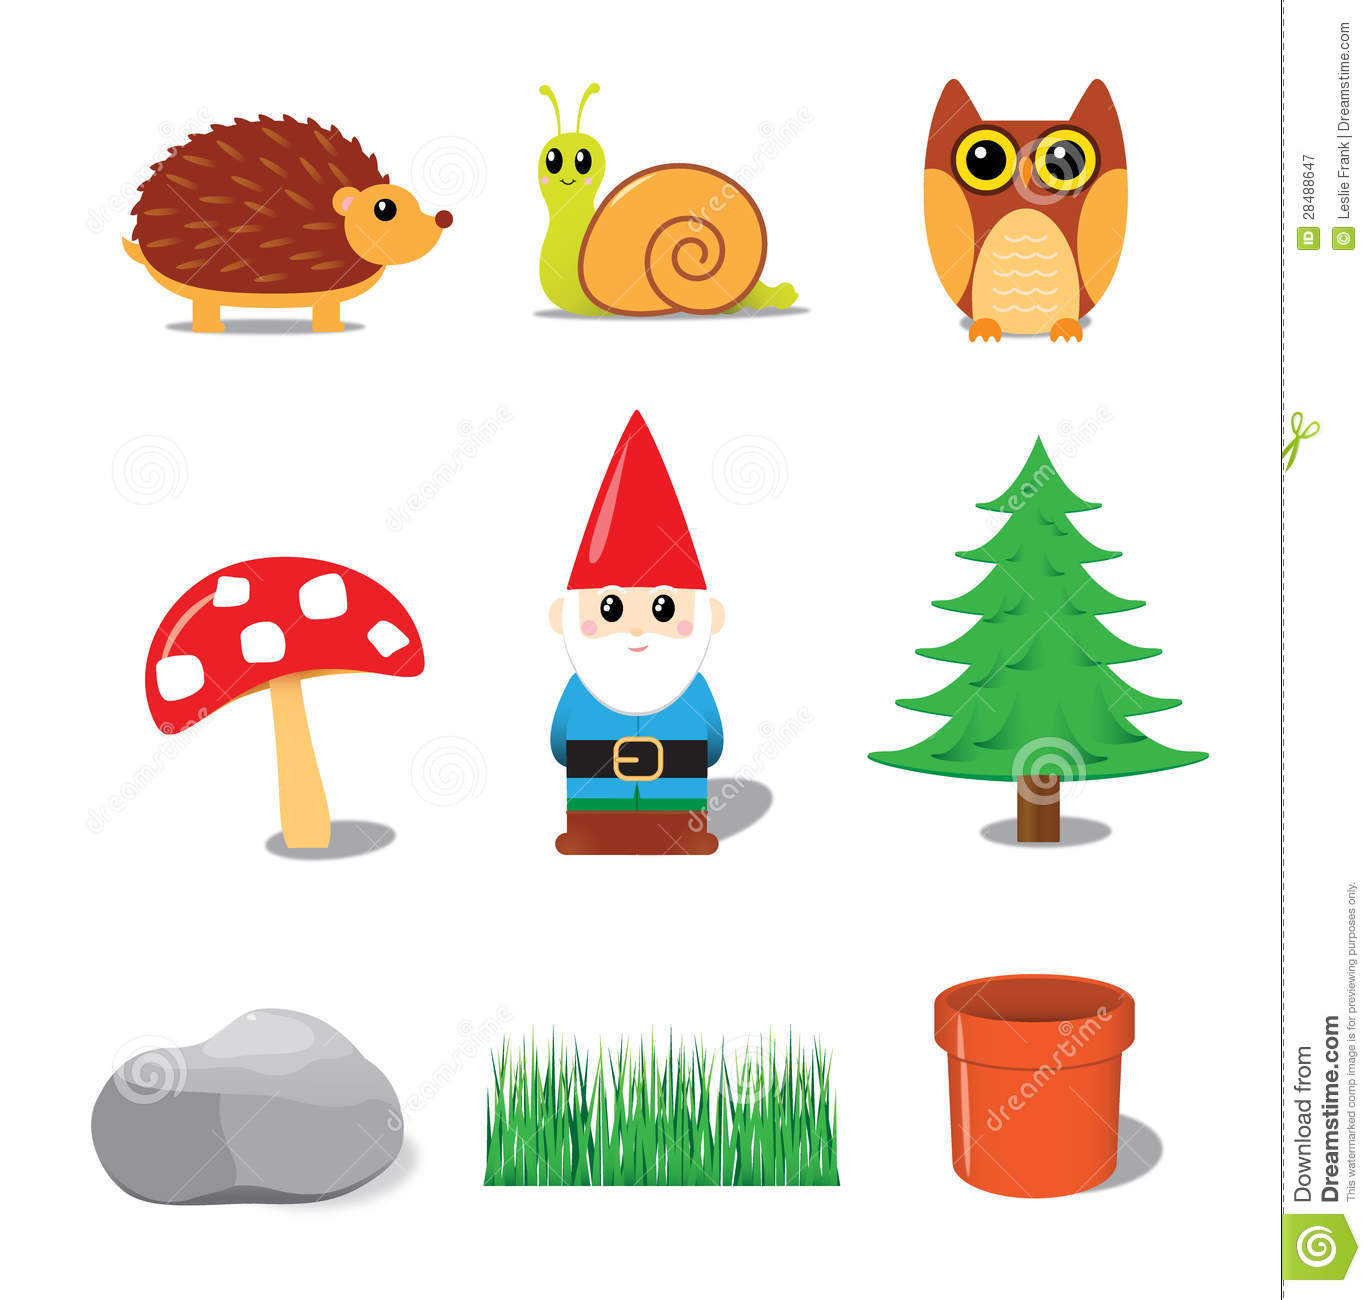 Gnome Clip Art: Garden Gnome Collection Stock Image. Image Of Hedgehog